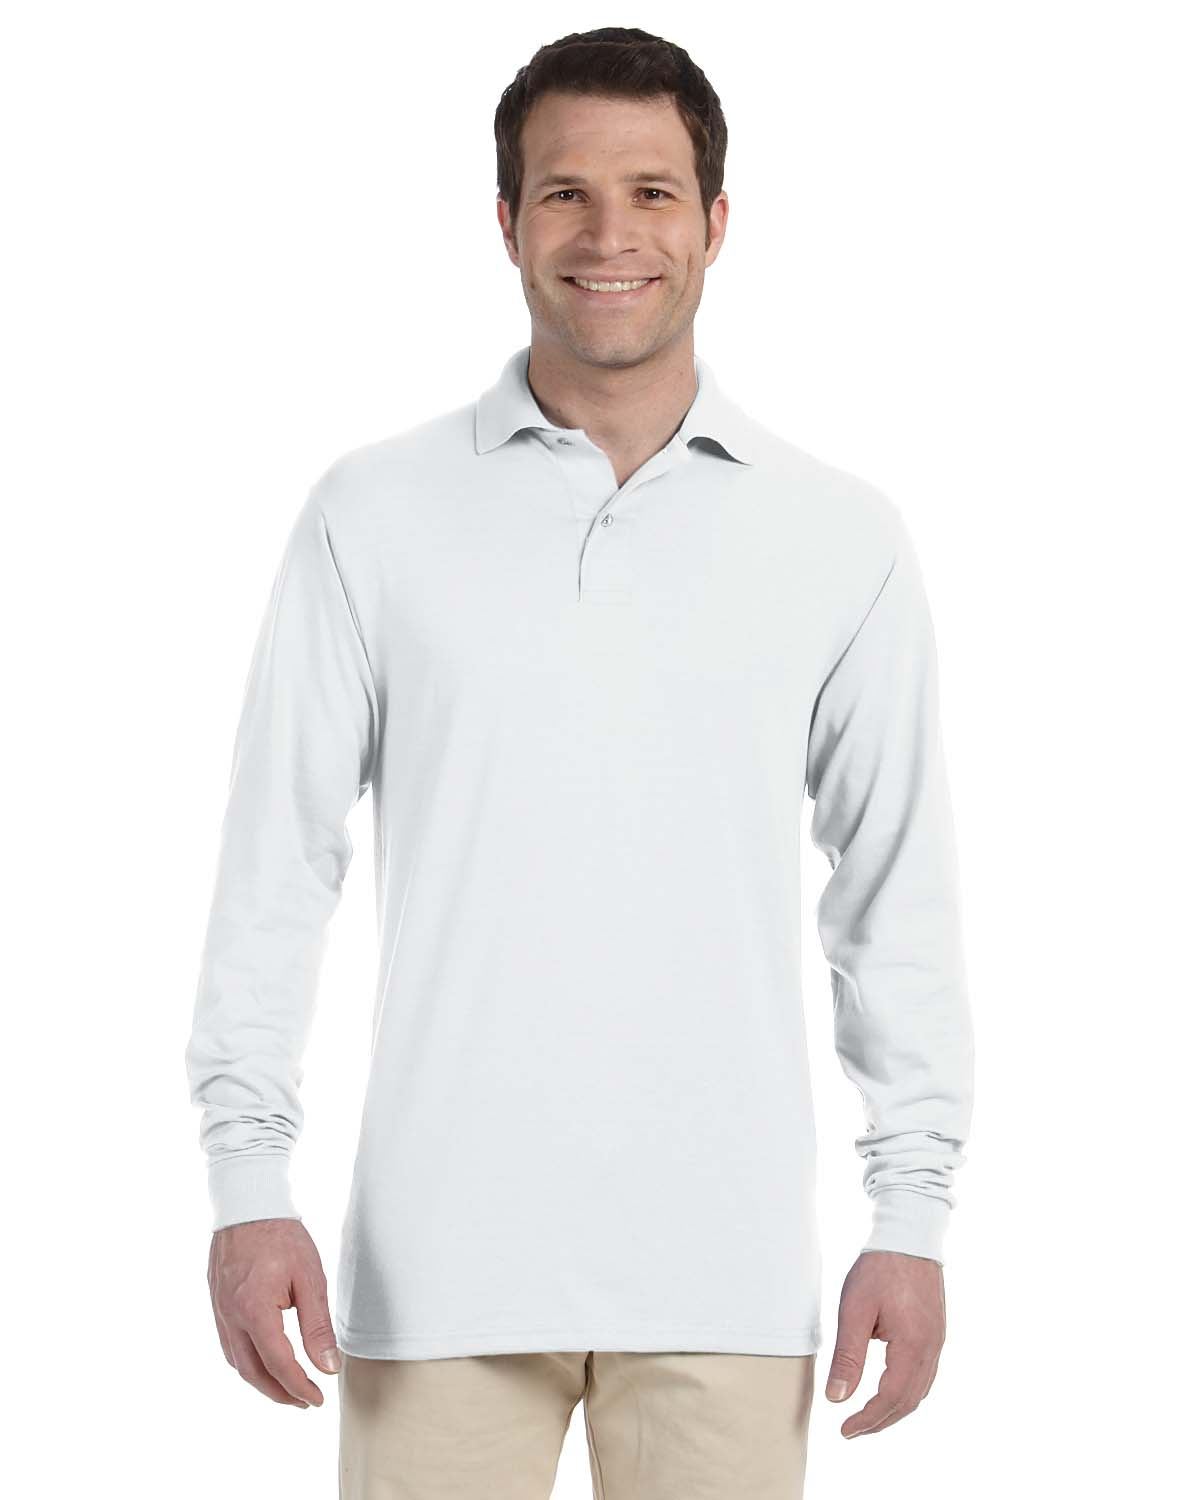 c631d87d159 ... 50/50 Long-Sleeve Jersey Polo with SpotShield™. Click to Zoom